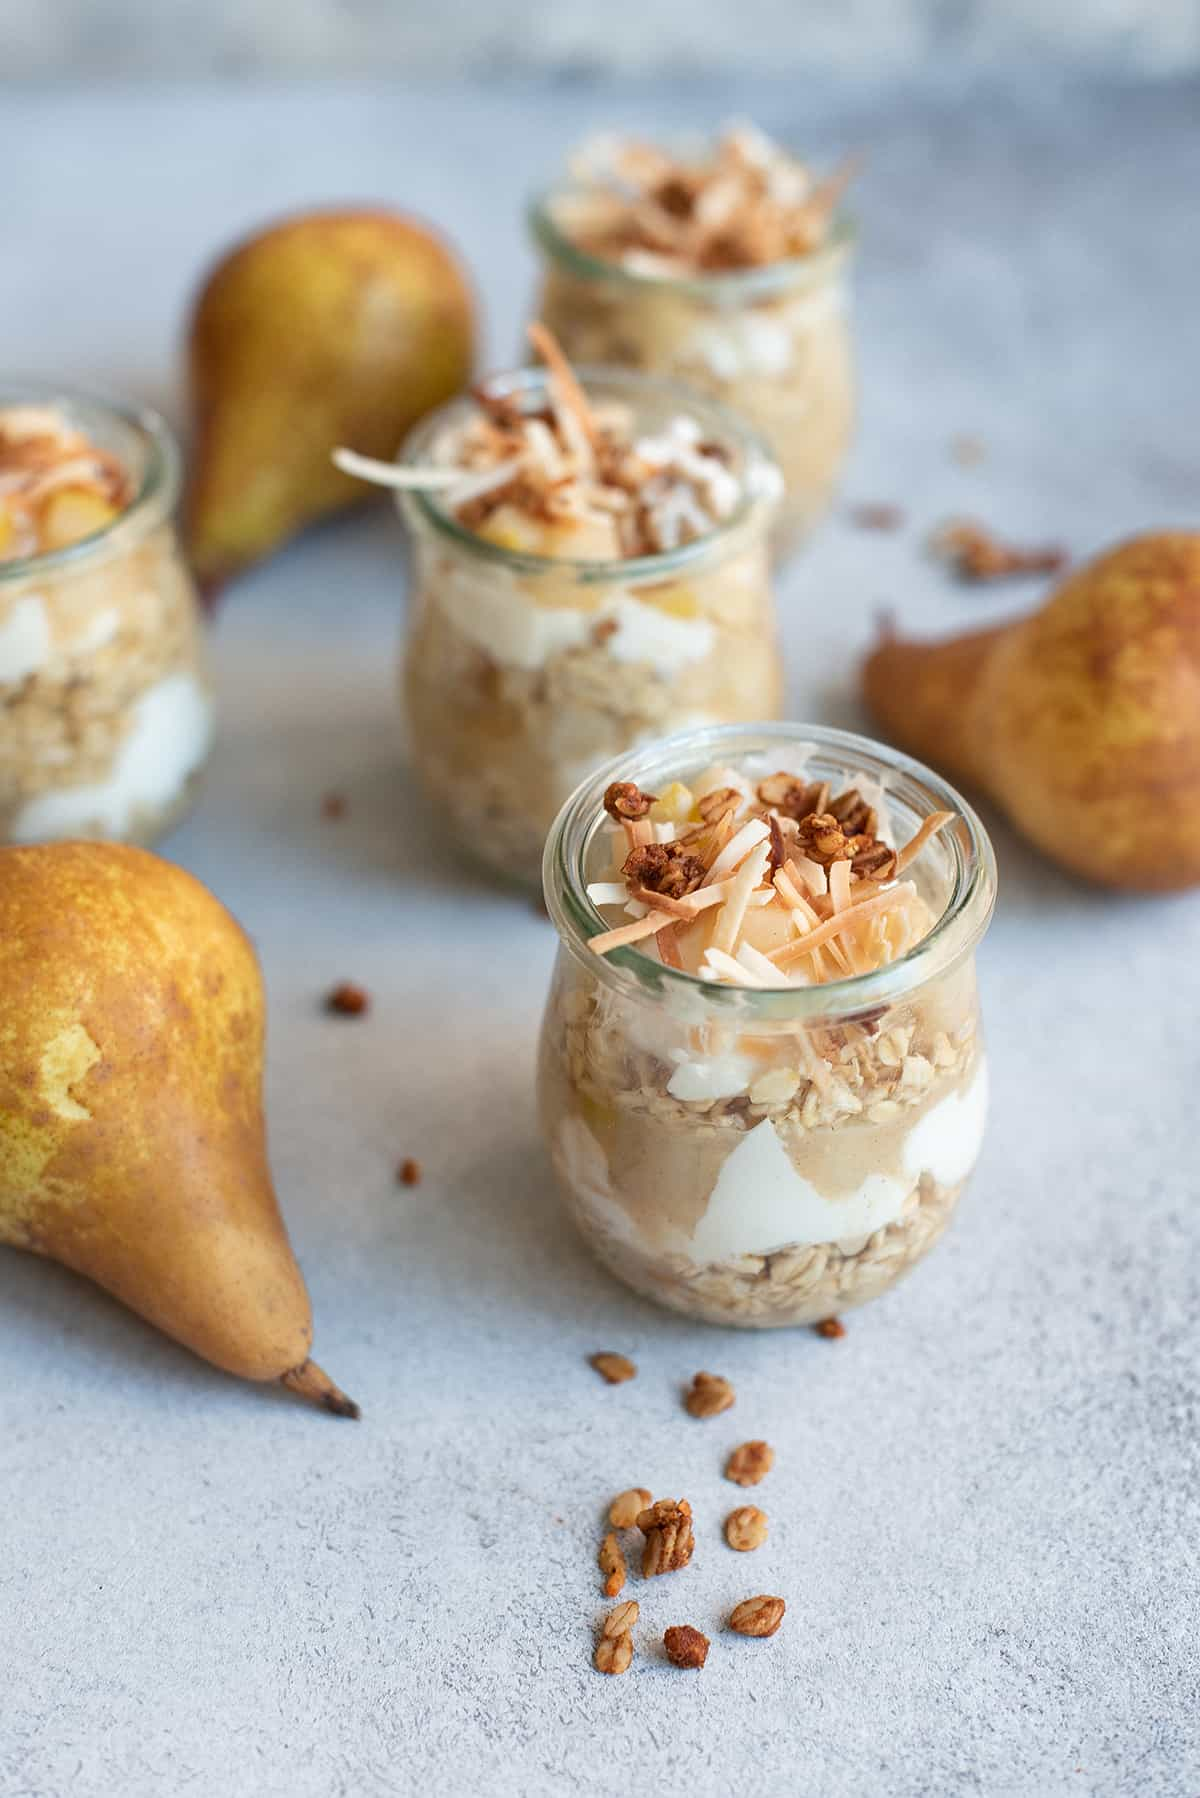 overnight oats pear parfaits in glass jars with pears